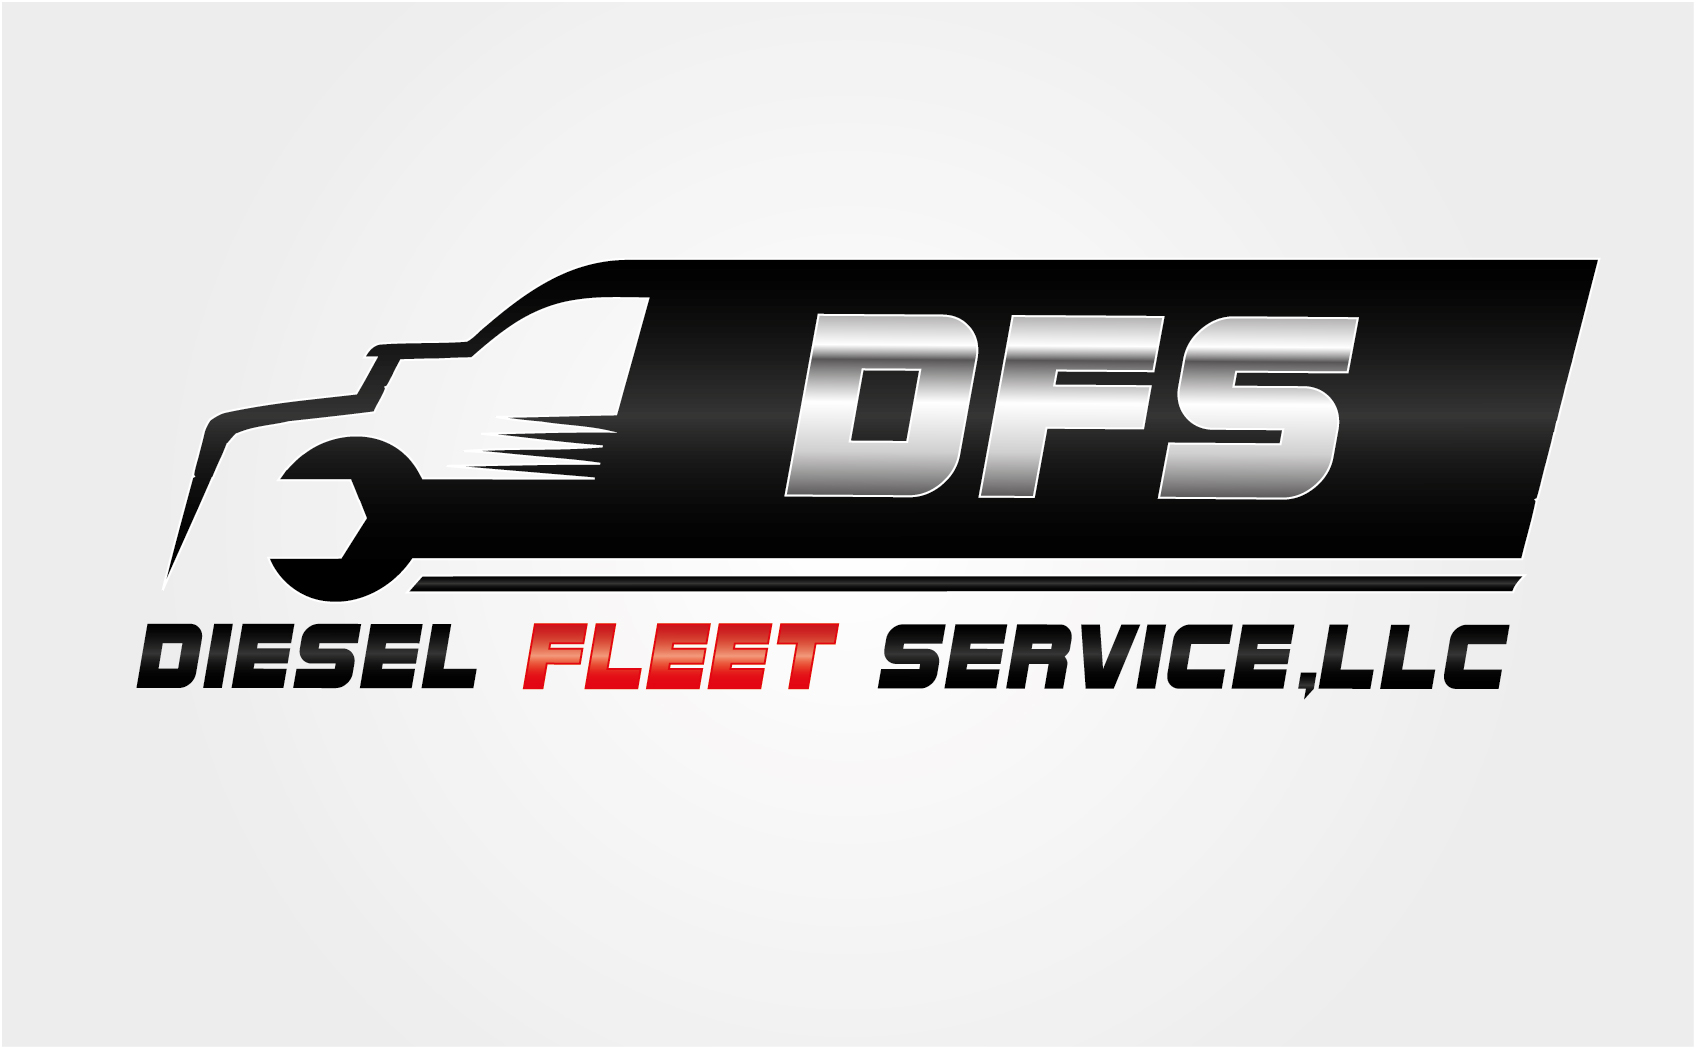 Logo Design by VENTSISLAV KOVACHEV - Entry No. 17 in the Logo Design Contest Artistic Logo Design for Diesel Fleet Service, LLC.